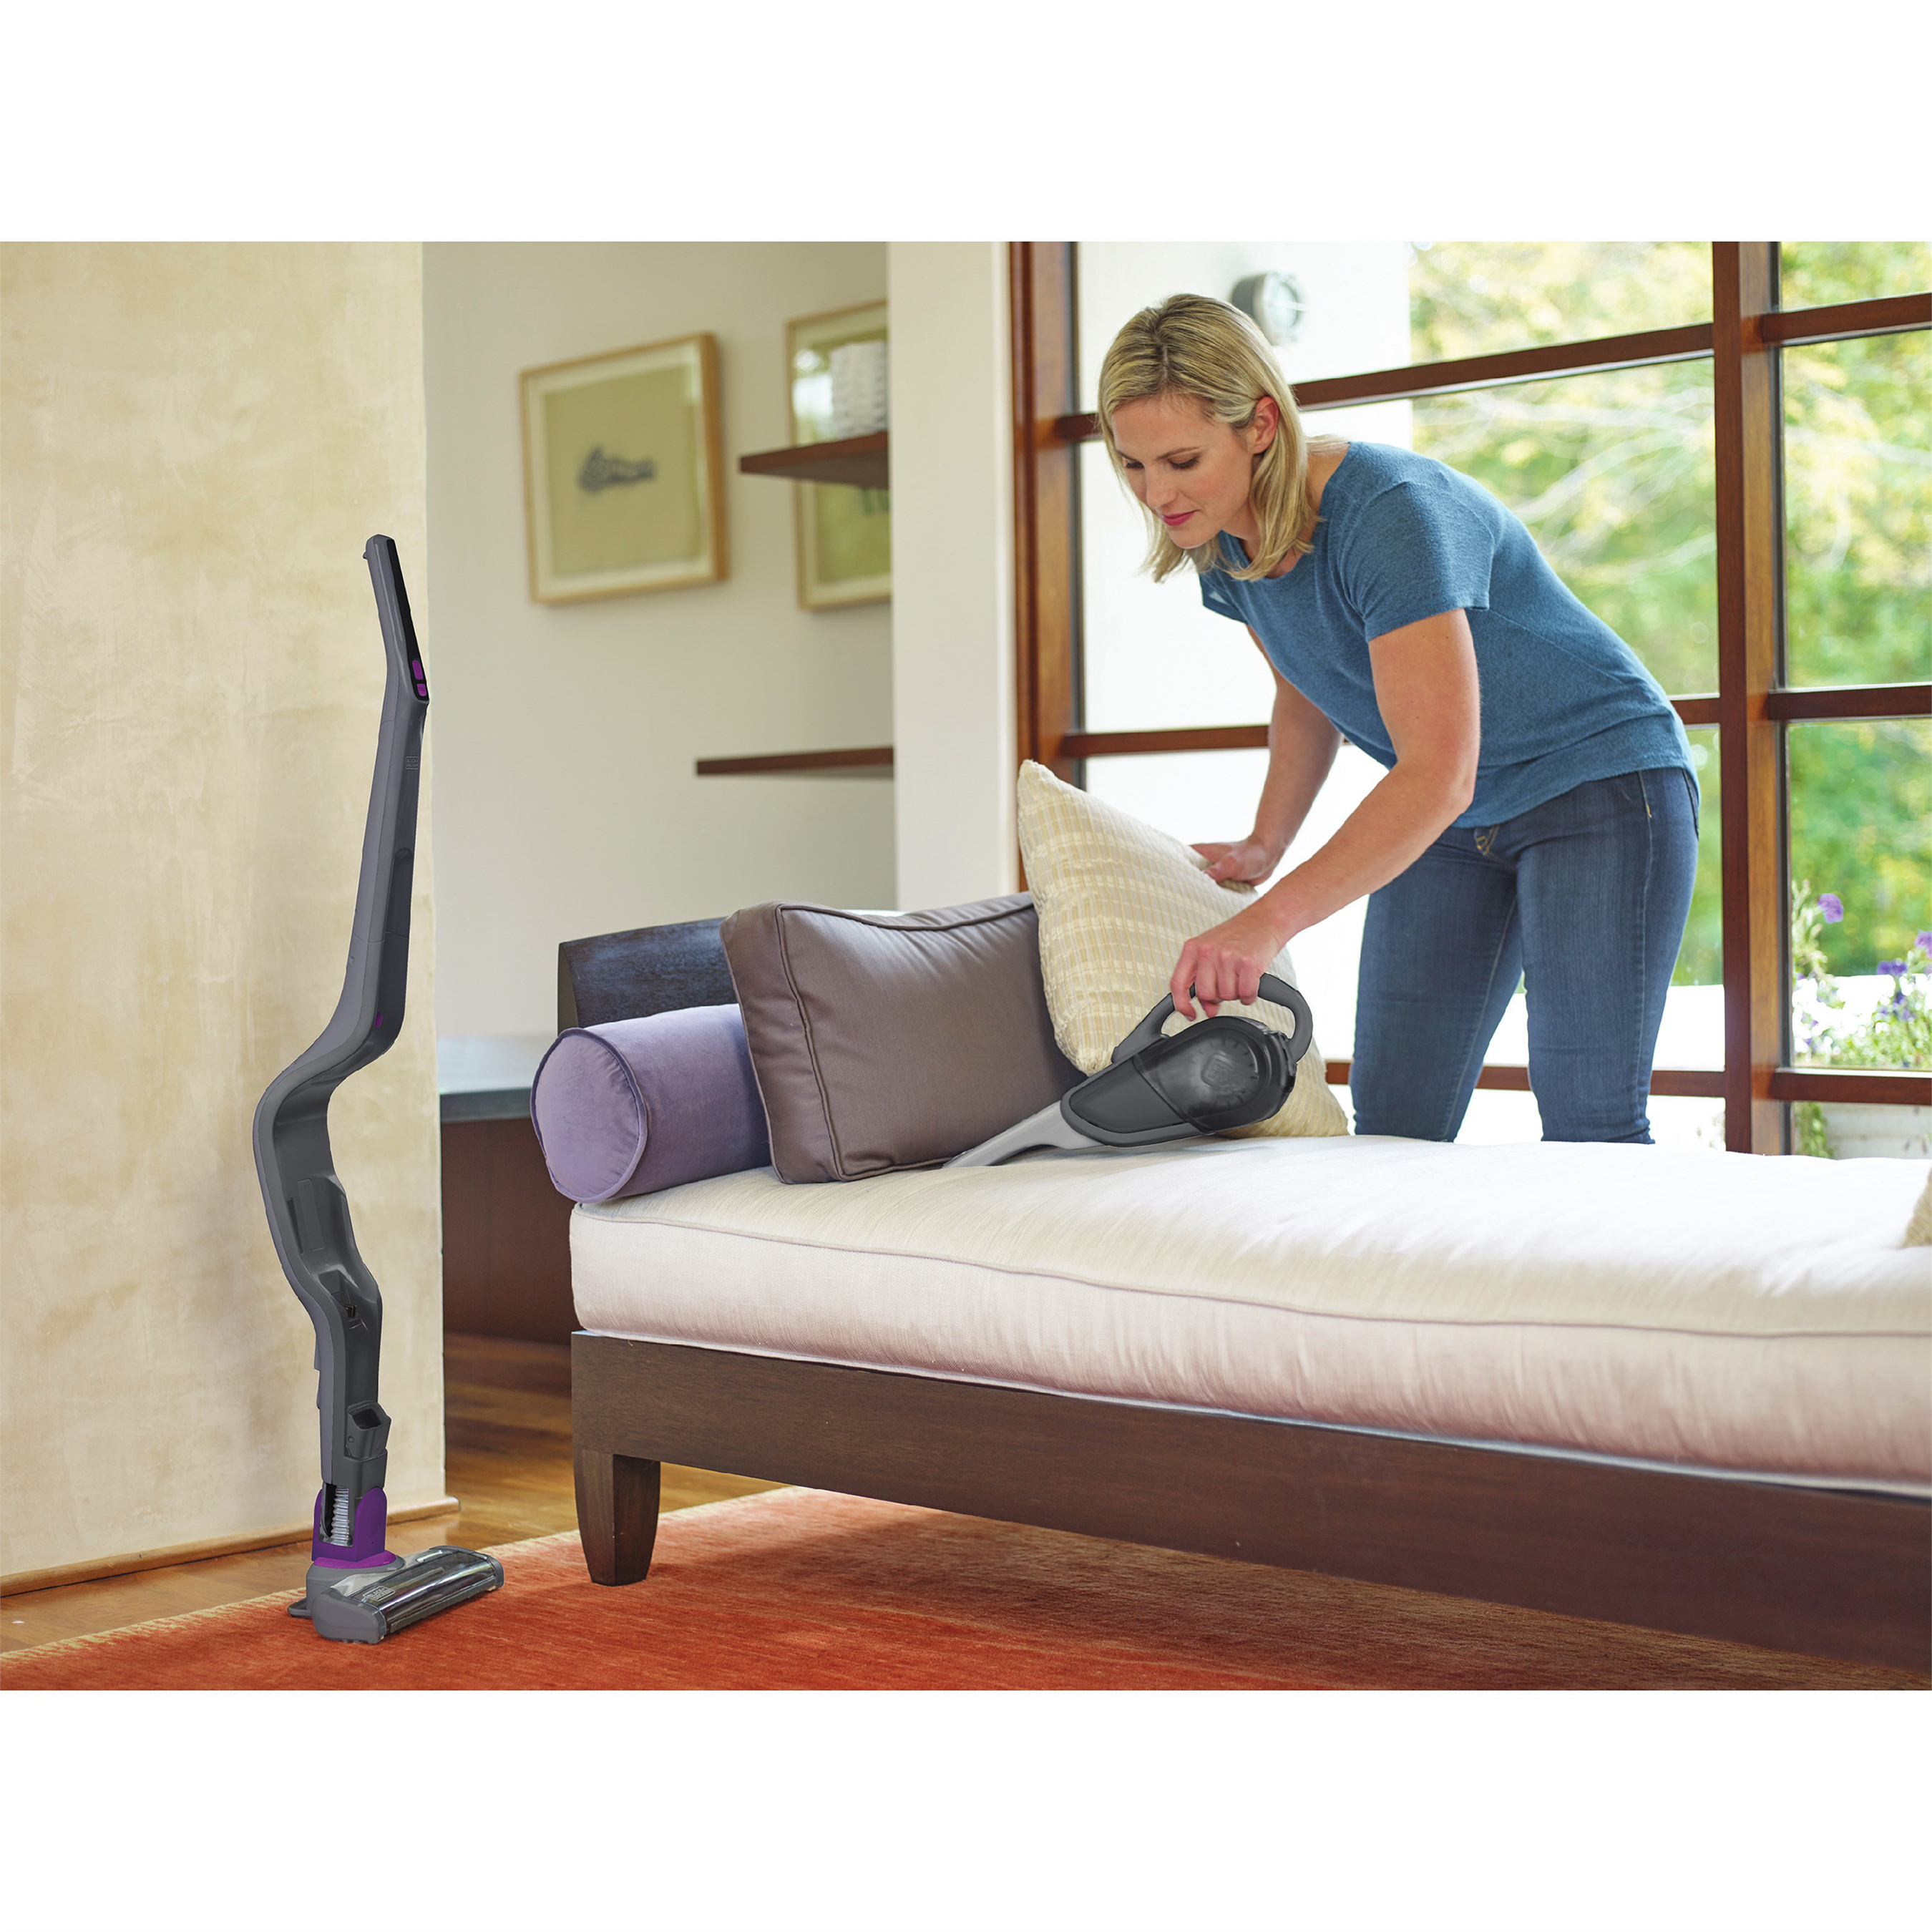 Ready when you are, this self-standing floor vacuum converts to a hand-vac for carpet-to-curtains home cleaning. SMARTECH™ sensing displays your battery and filter status as you work and automatically adjusts suction to the surface.